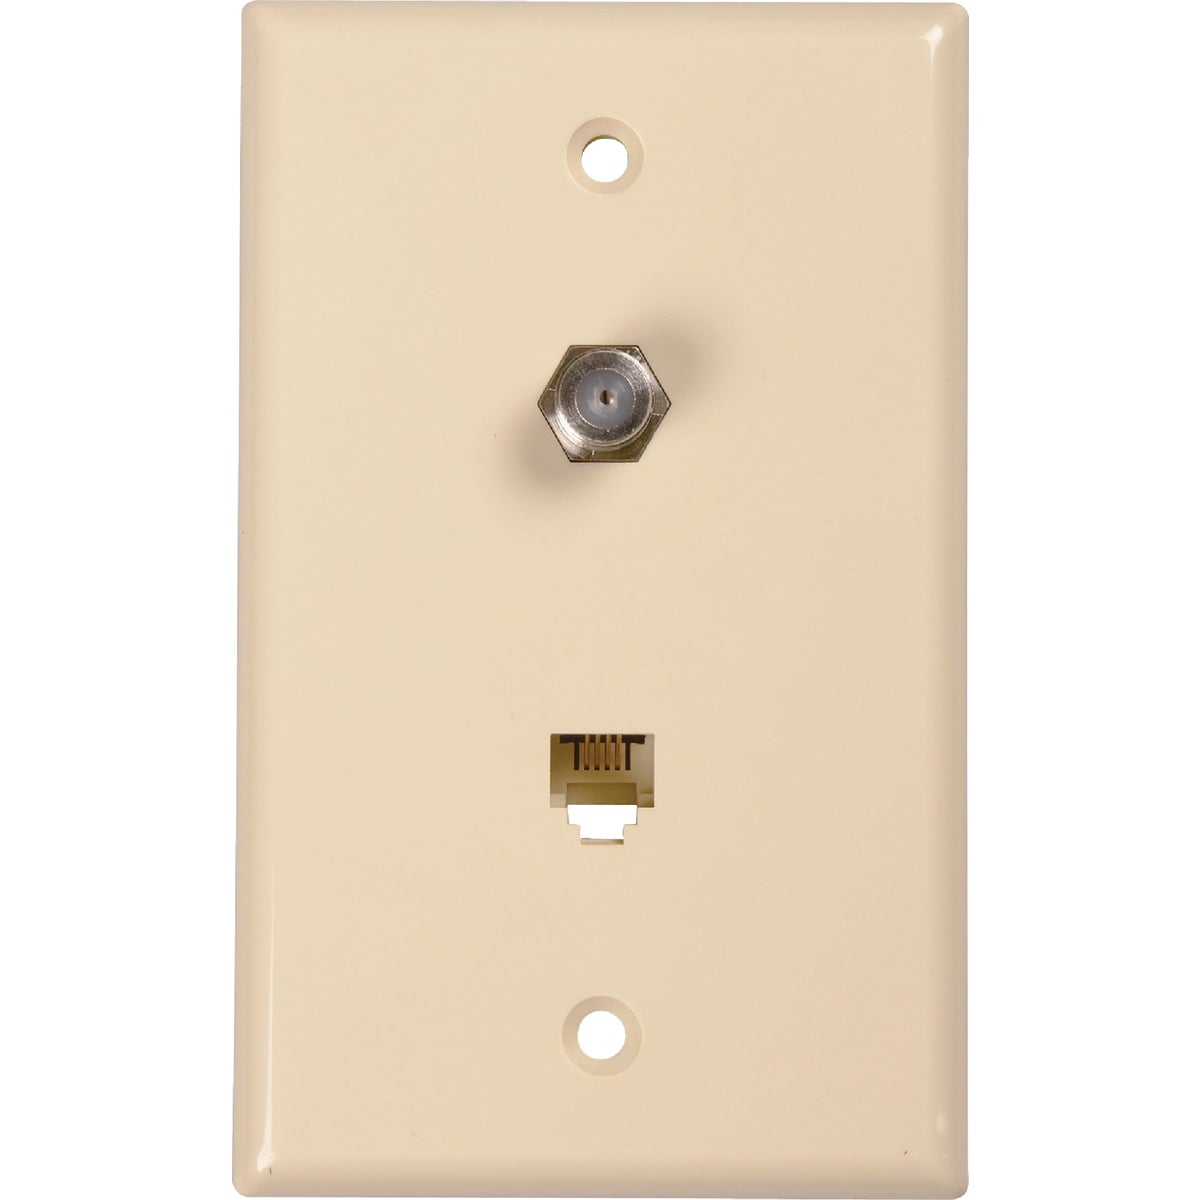 PHONE/COAX WALL PLATE - TP062RV by Audiovox Accessories